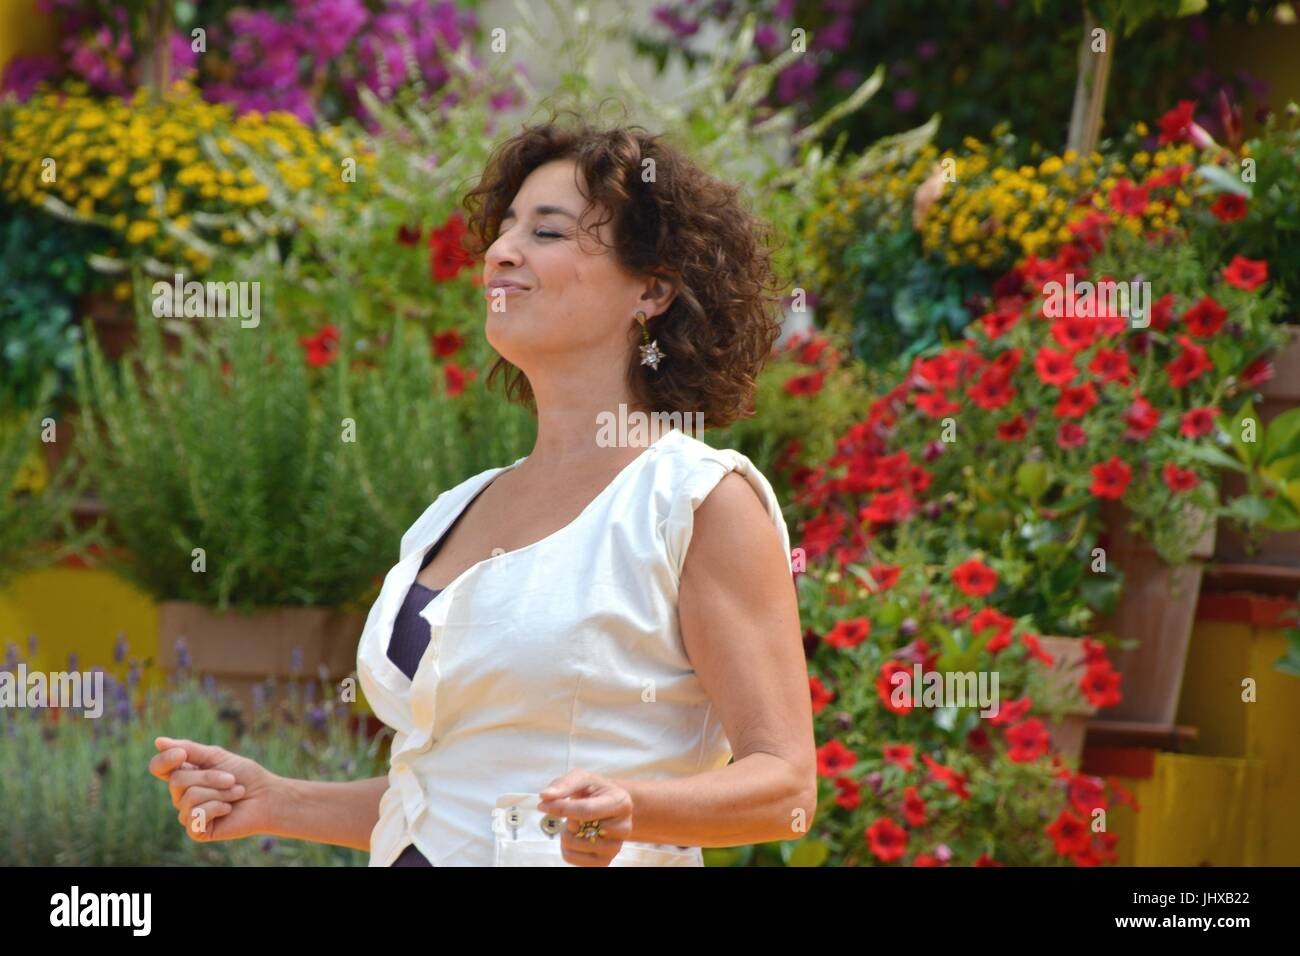 Rust, Germany, 16th July, 2017, Das Erste ARD TV Show 'Immer wieder Sonntags' Featuring: Isabel Varell Credit: - Stock Image